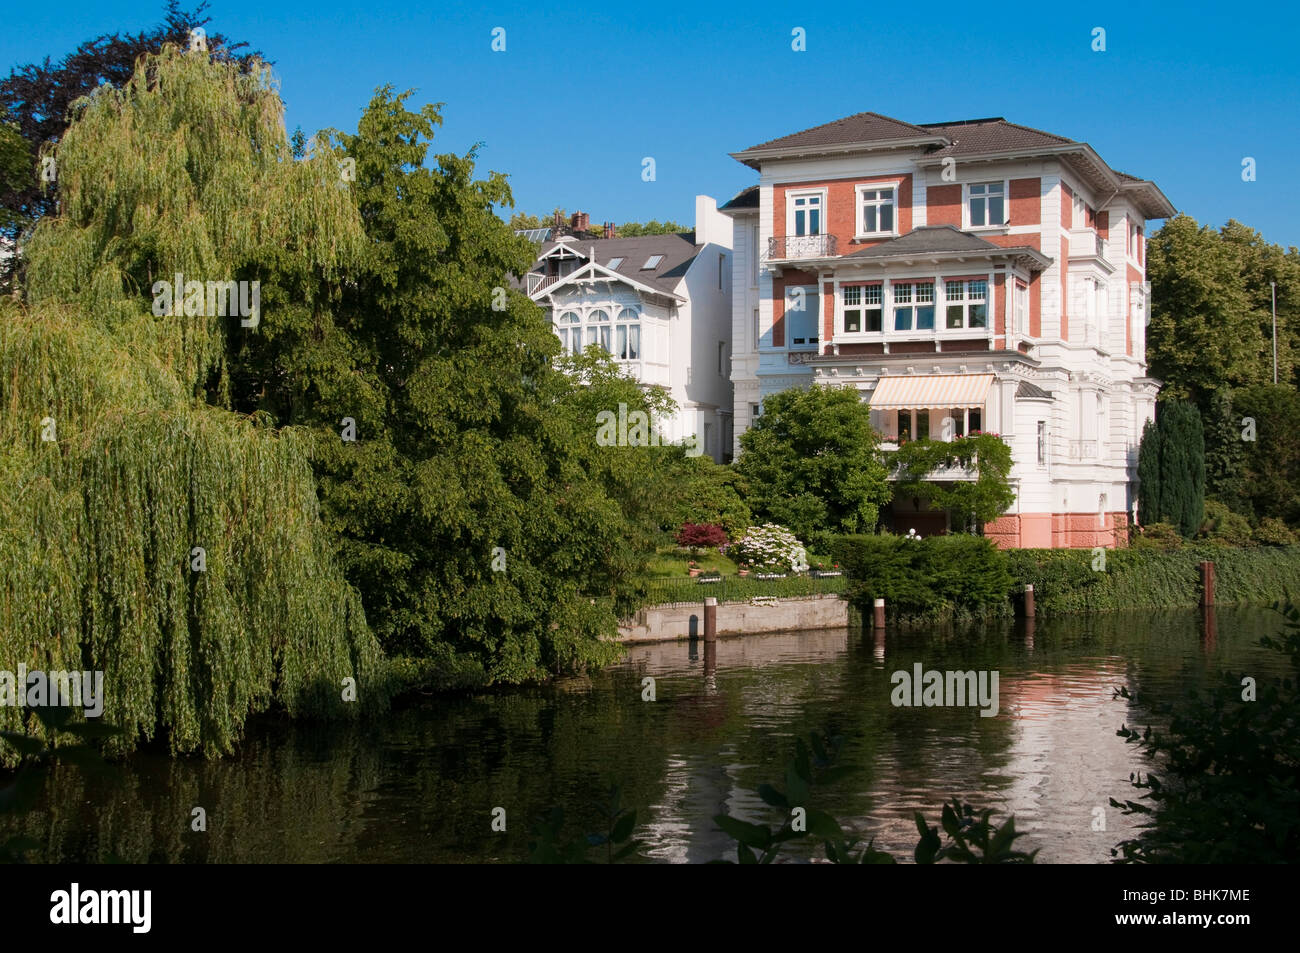 villen an der alster hamburg deutschland villas near river stock photo 28082670 alamy. Black Bedroom Furniture Sets. Home Design Ideas